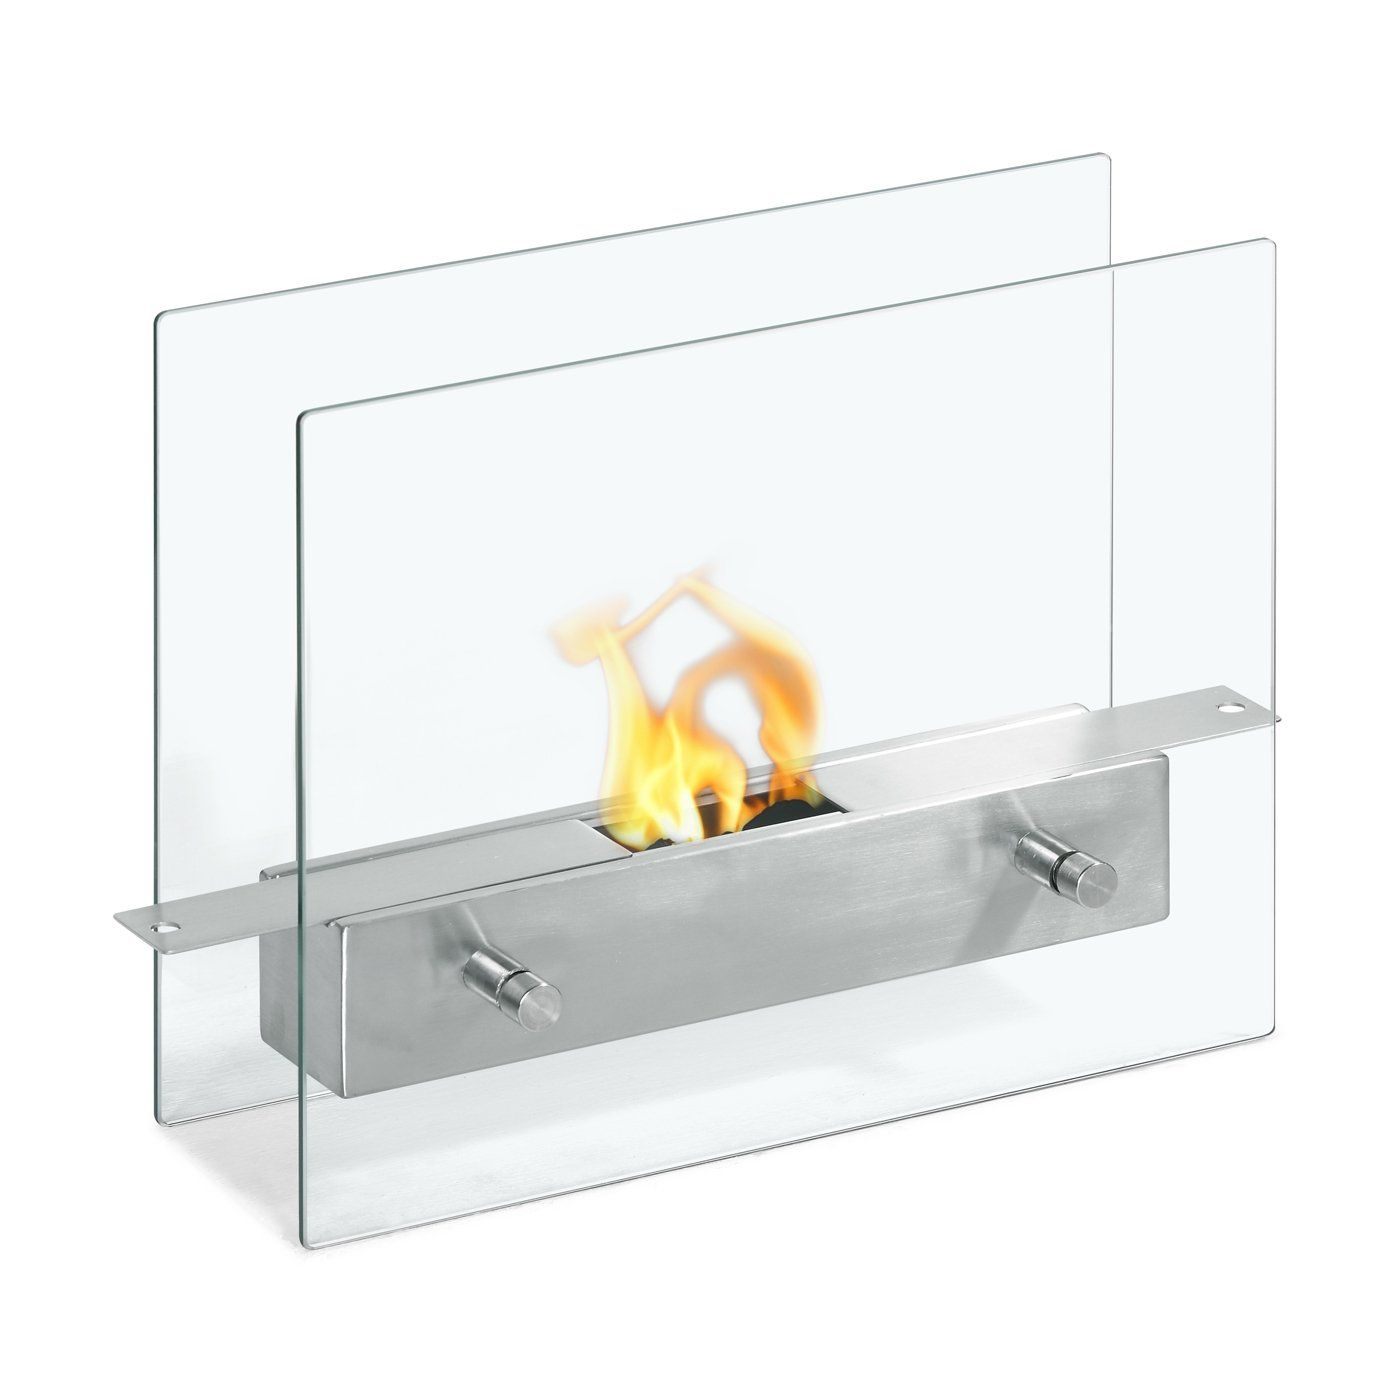 Modern Elements F202200 Orion Table Top Ethanol Fireplace Stainless Steel Lowe S Canada Ethanol Fireplace Bioethanol Fireplace Tabletop Fireplaces